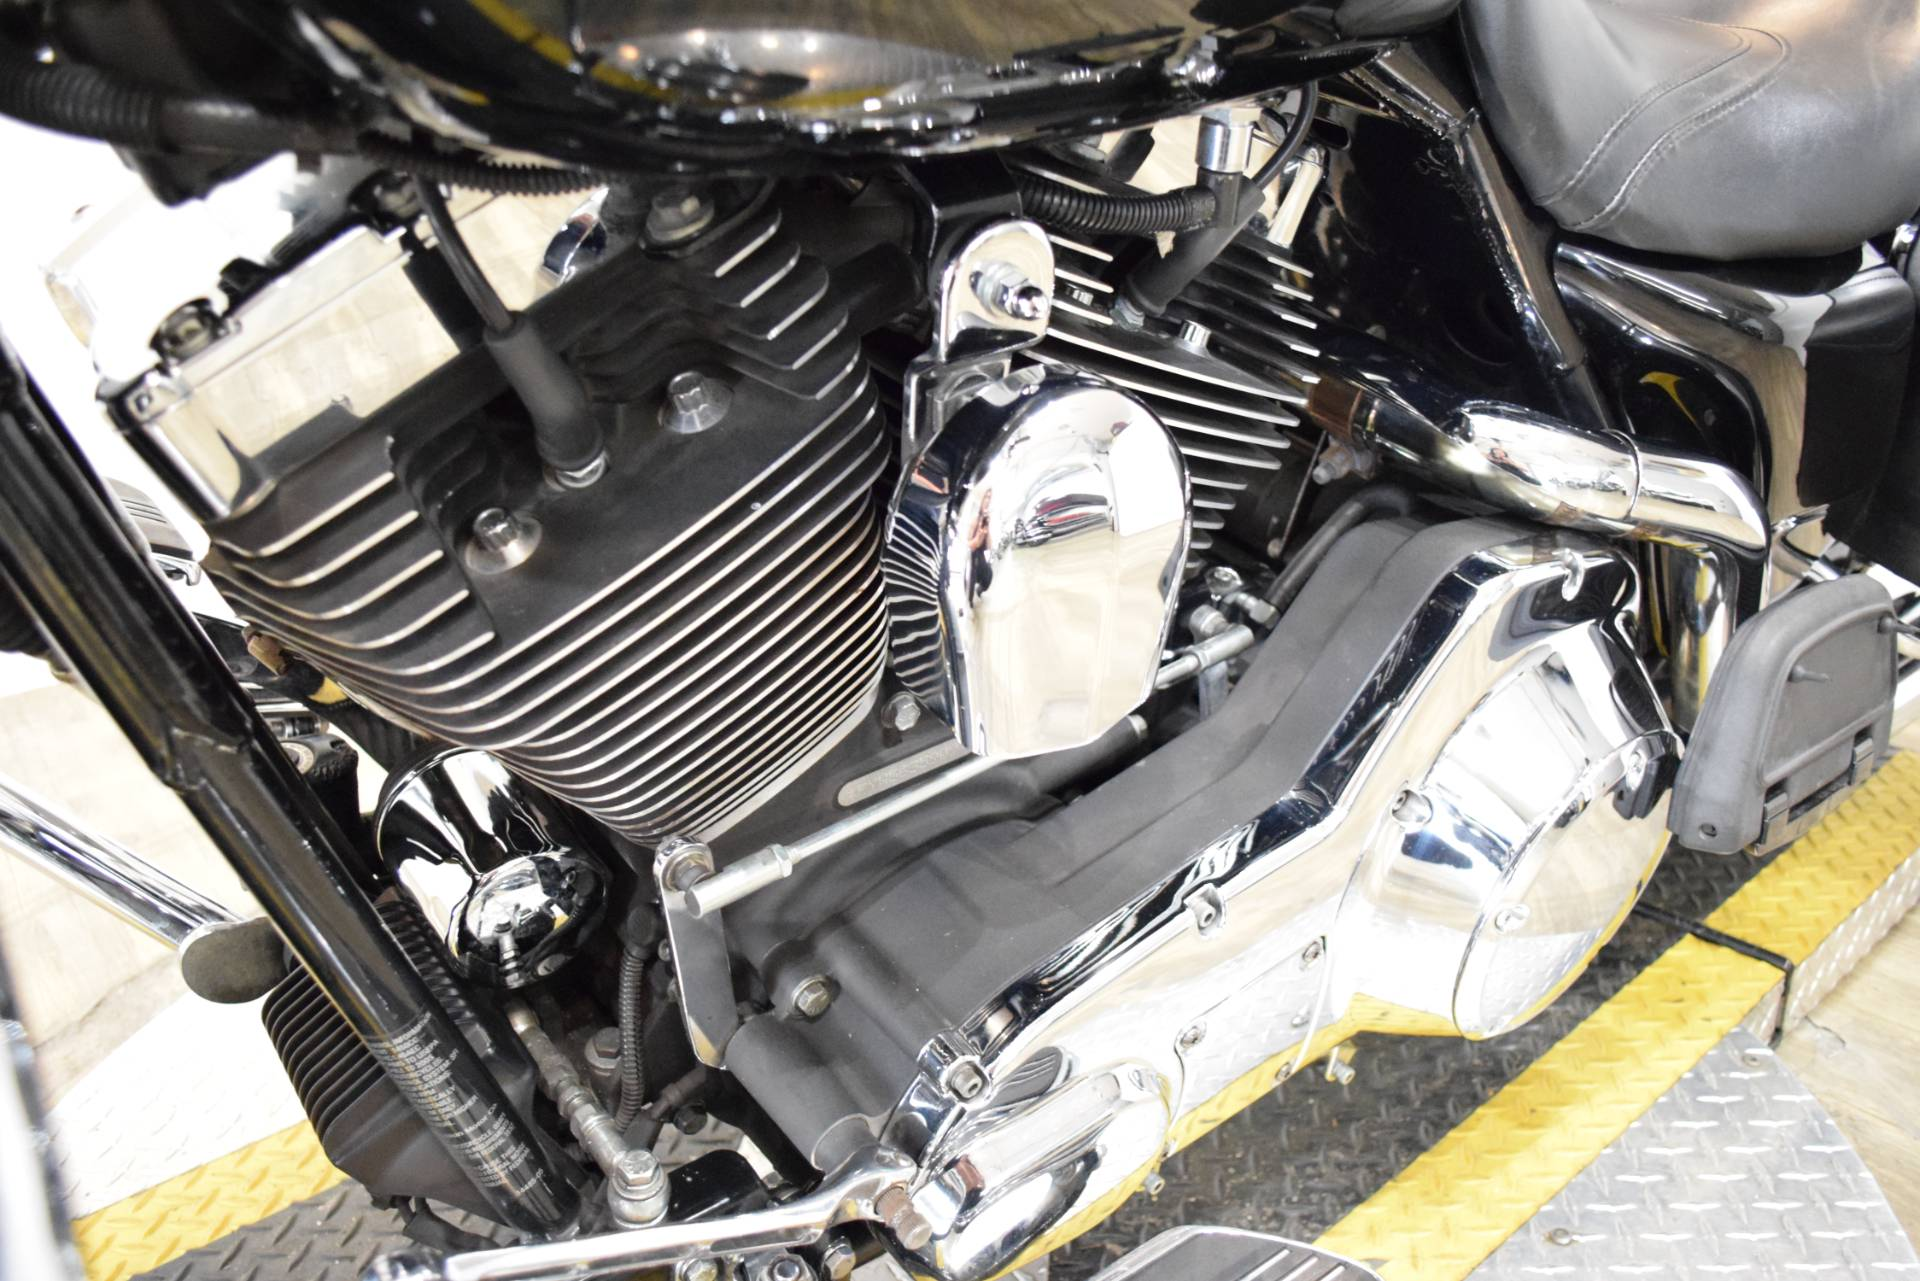 2005 Harley-Davidson FLHR/FLHRI Road King® in Wauconda, Illinois - Photo 20